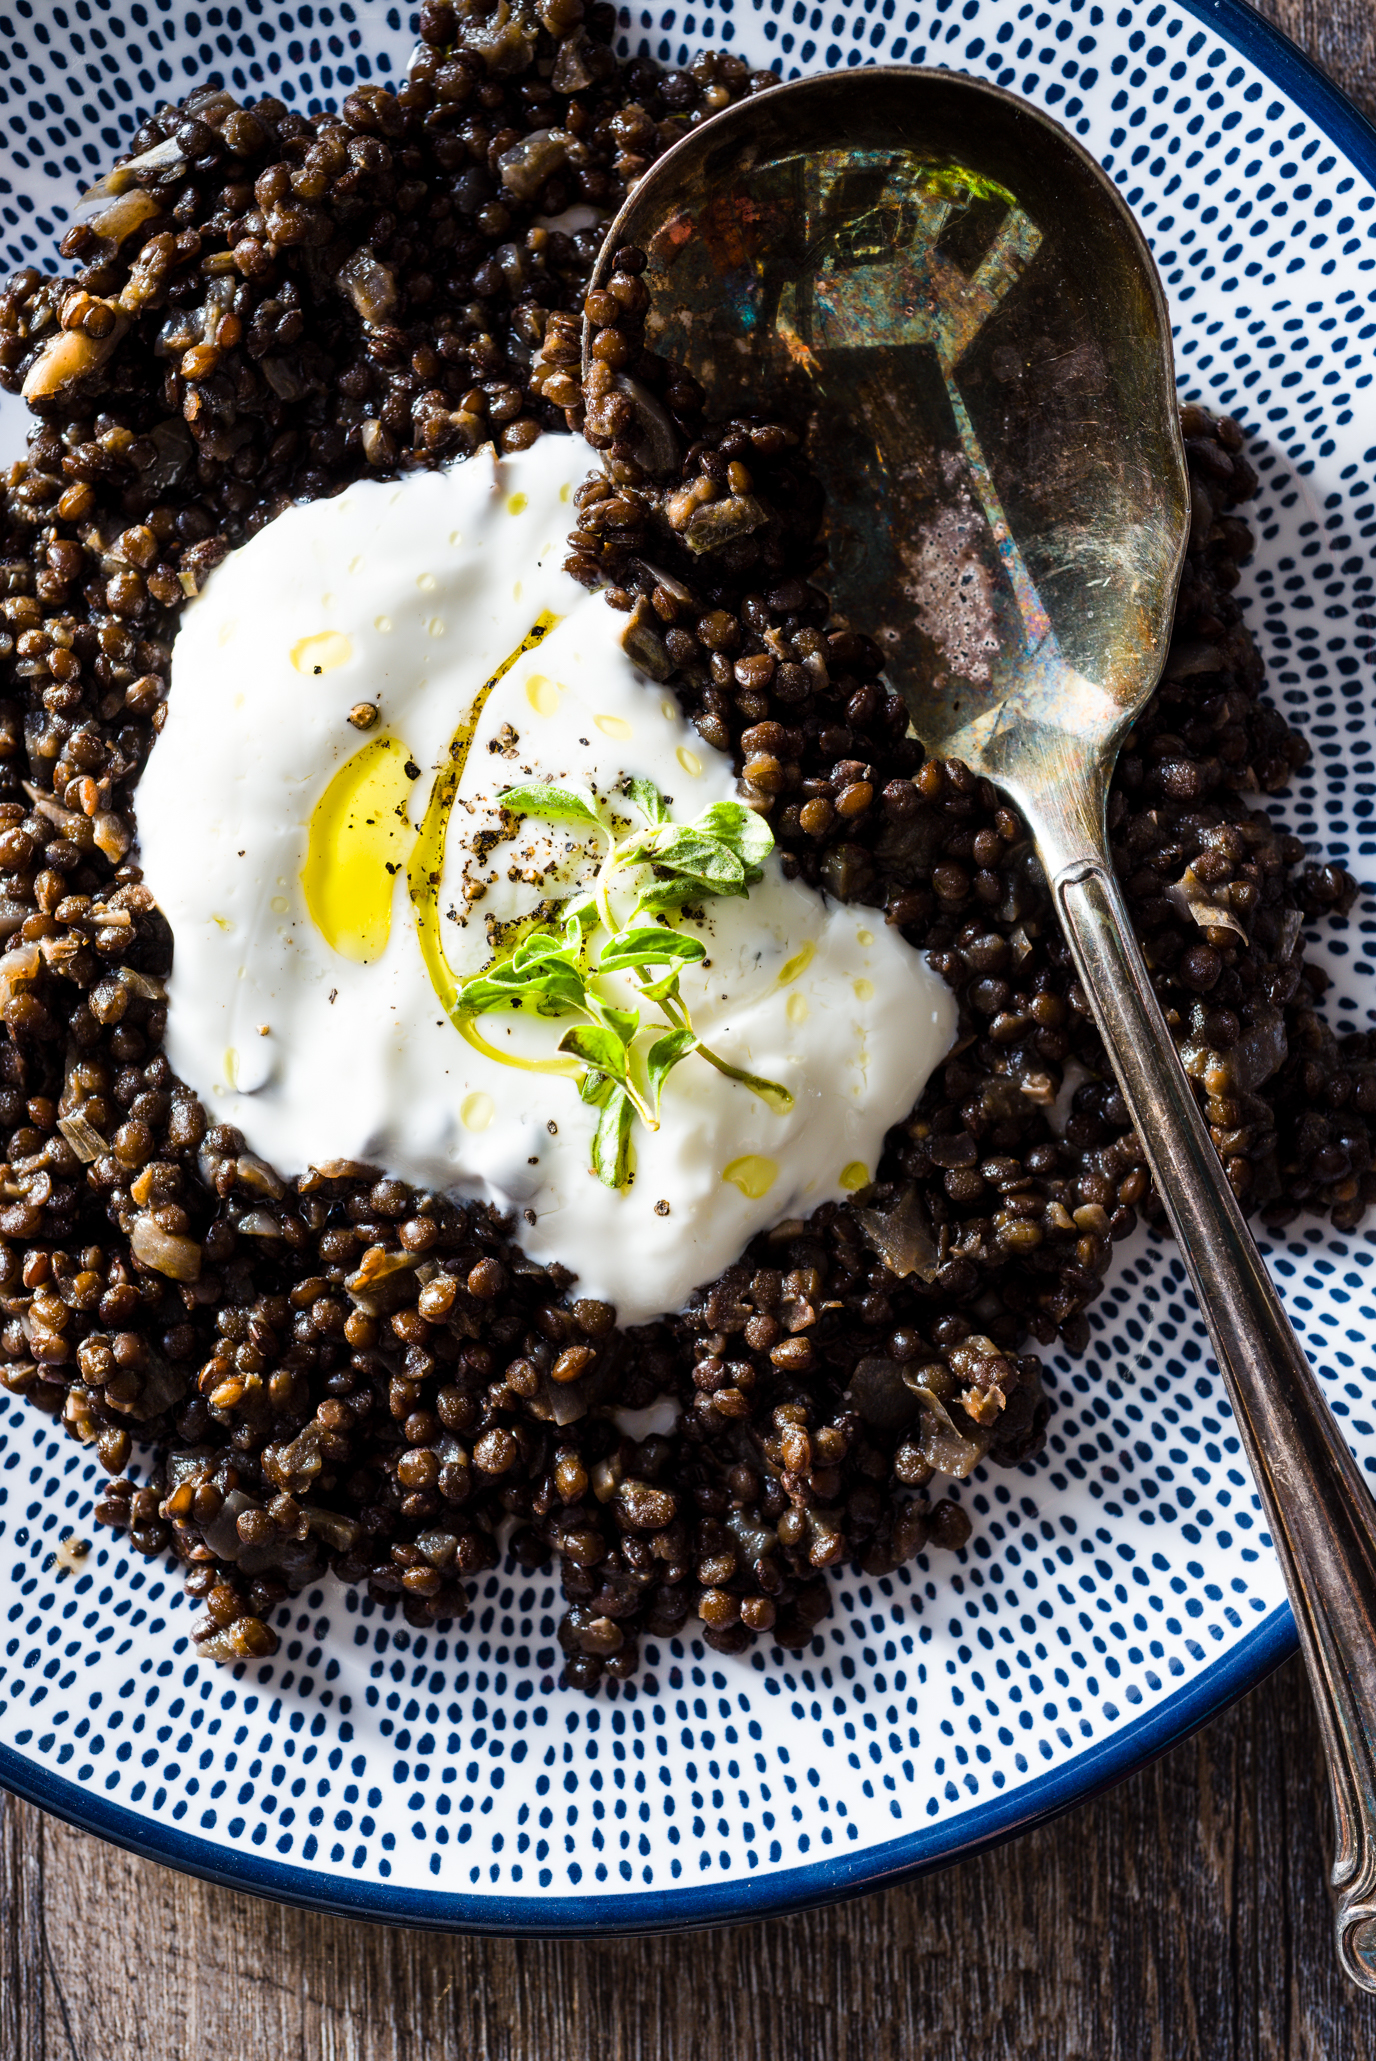 Beluga Lentils With Yogurt Olive Oil And Oregano Luv Cooks Love People With Tasty Food